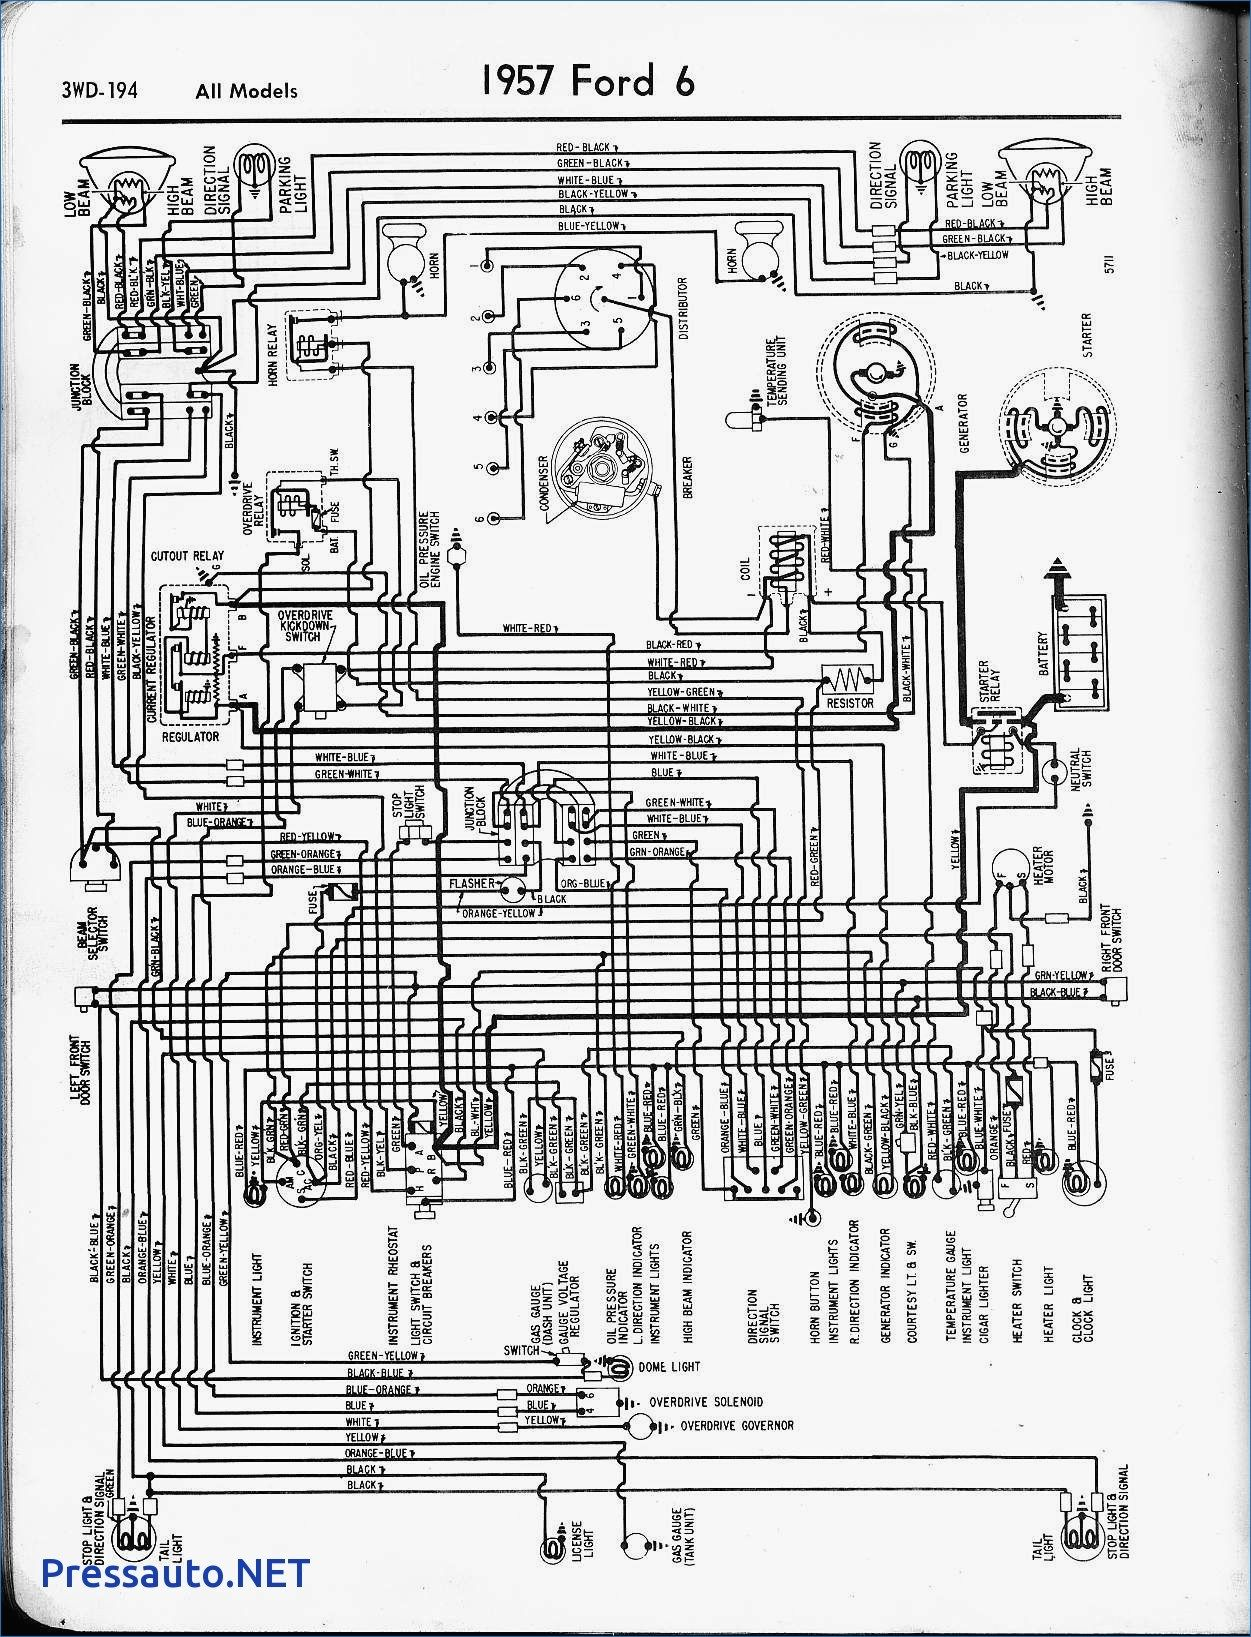 wiring diagram for peugeot 307 wiring diagram go peugeot 307 cc radio wiring diagram peugeot 307 [ 1251 x 1637 Pixel ]